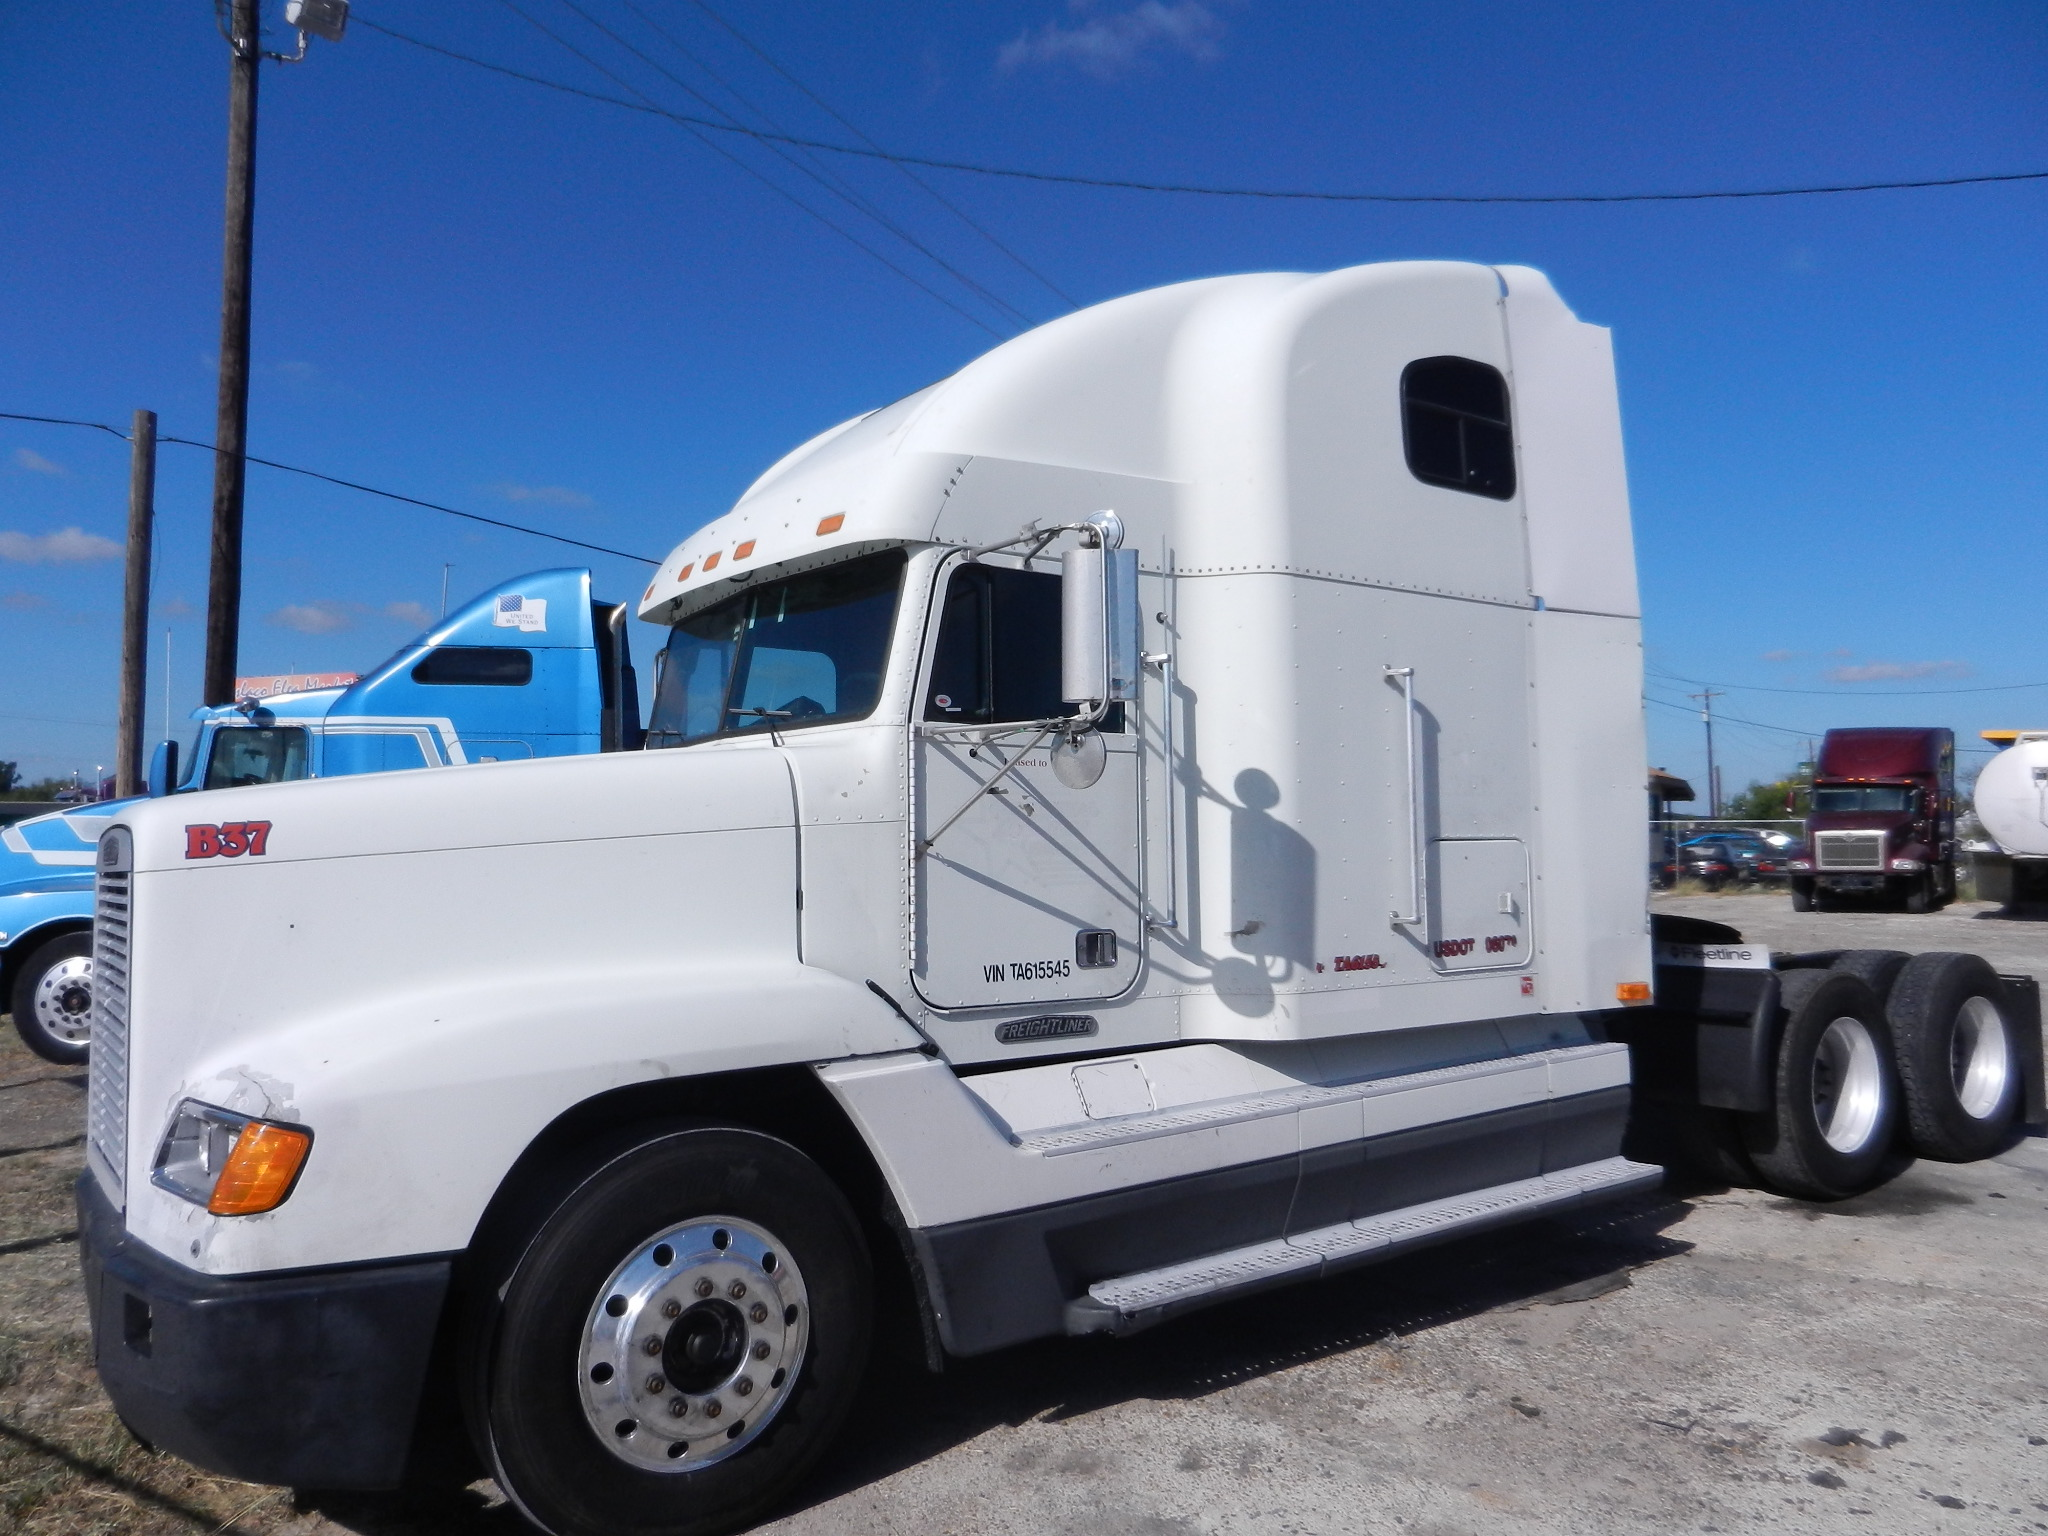 SOLD    1996 Freightliner FLD120 Condo   Detroit 12.7L 470hp, jakes, 10 speed, air ride, double bunk, aluminum wheels, sliding 5th, 40k lbs rears   $8900 dlls